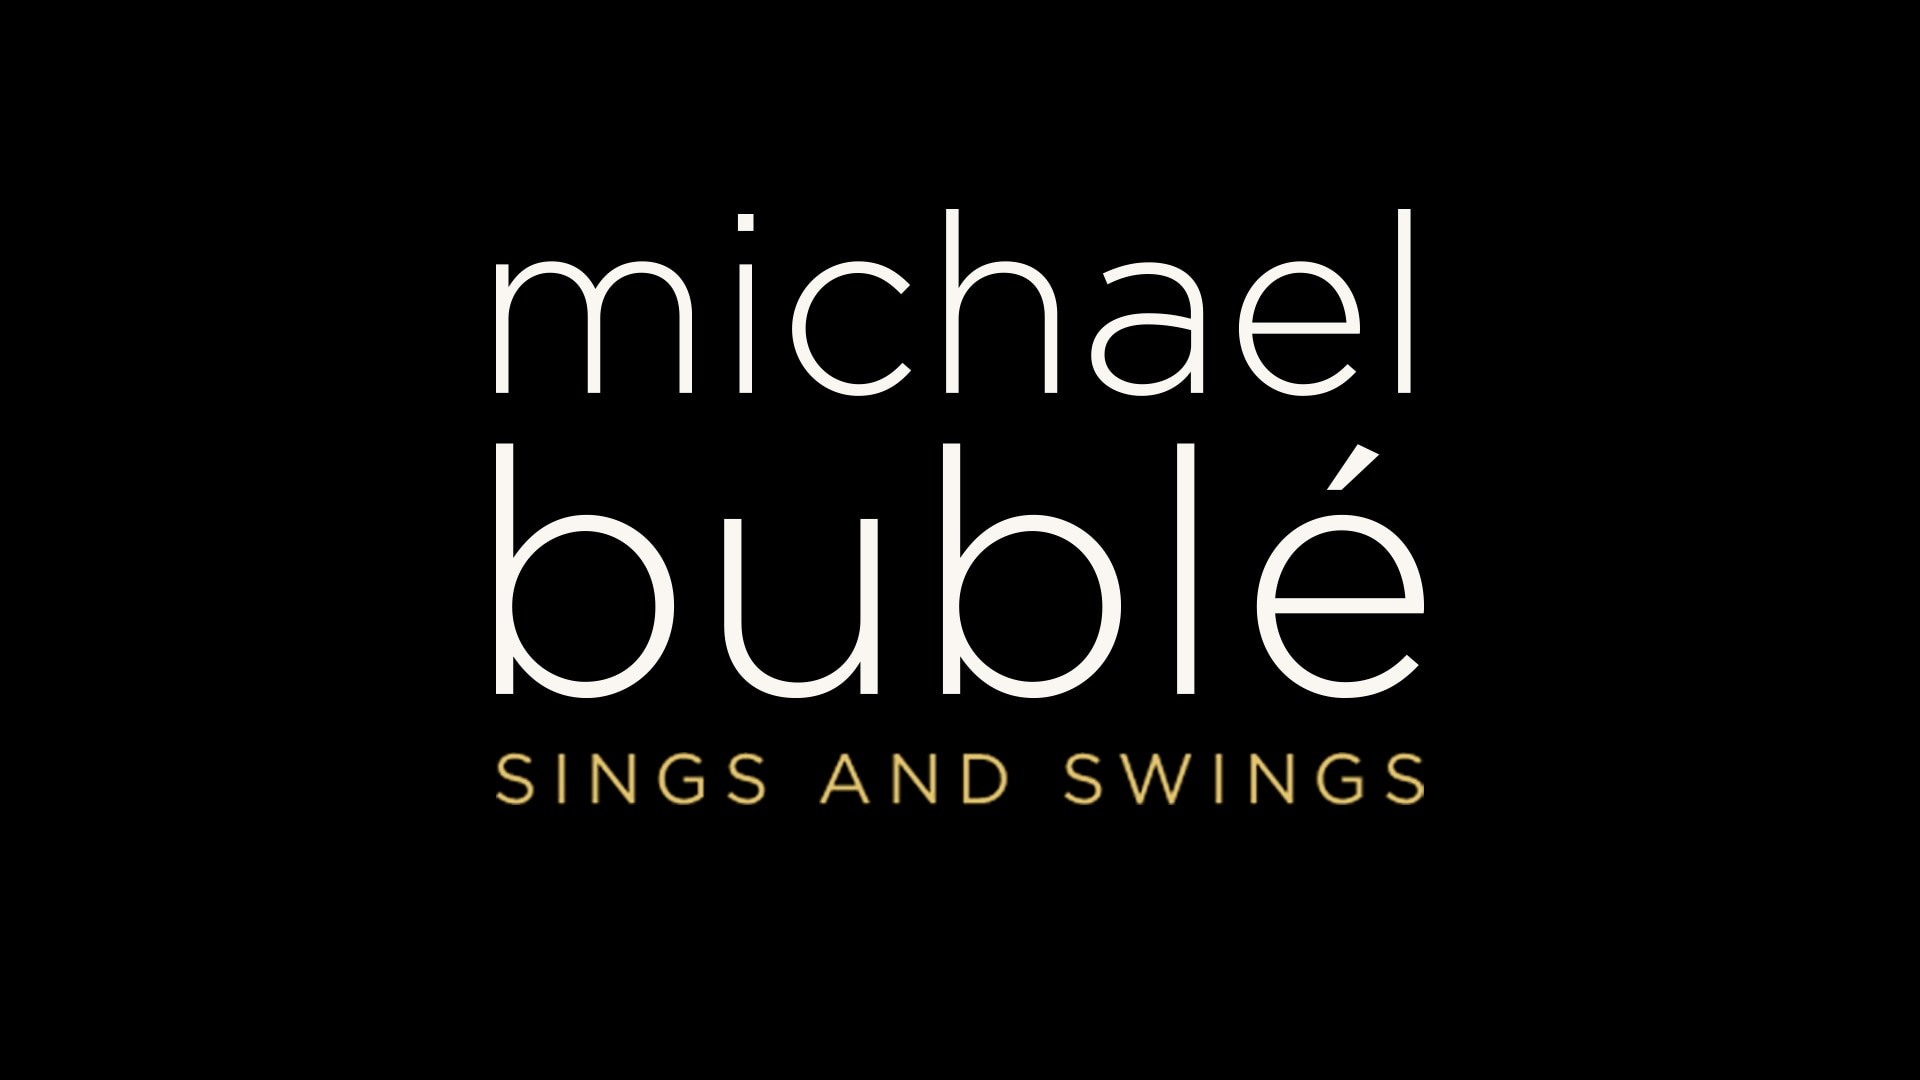 michael bubl sings and swings nbccom